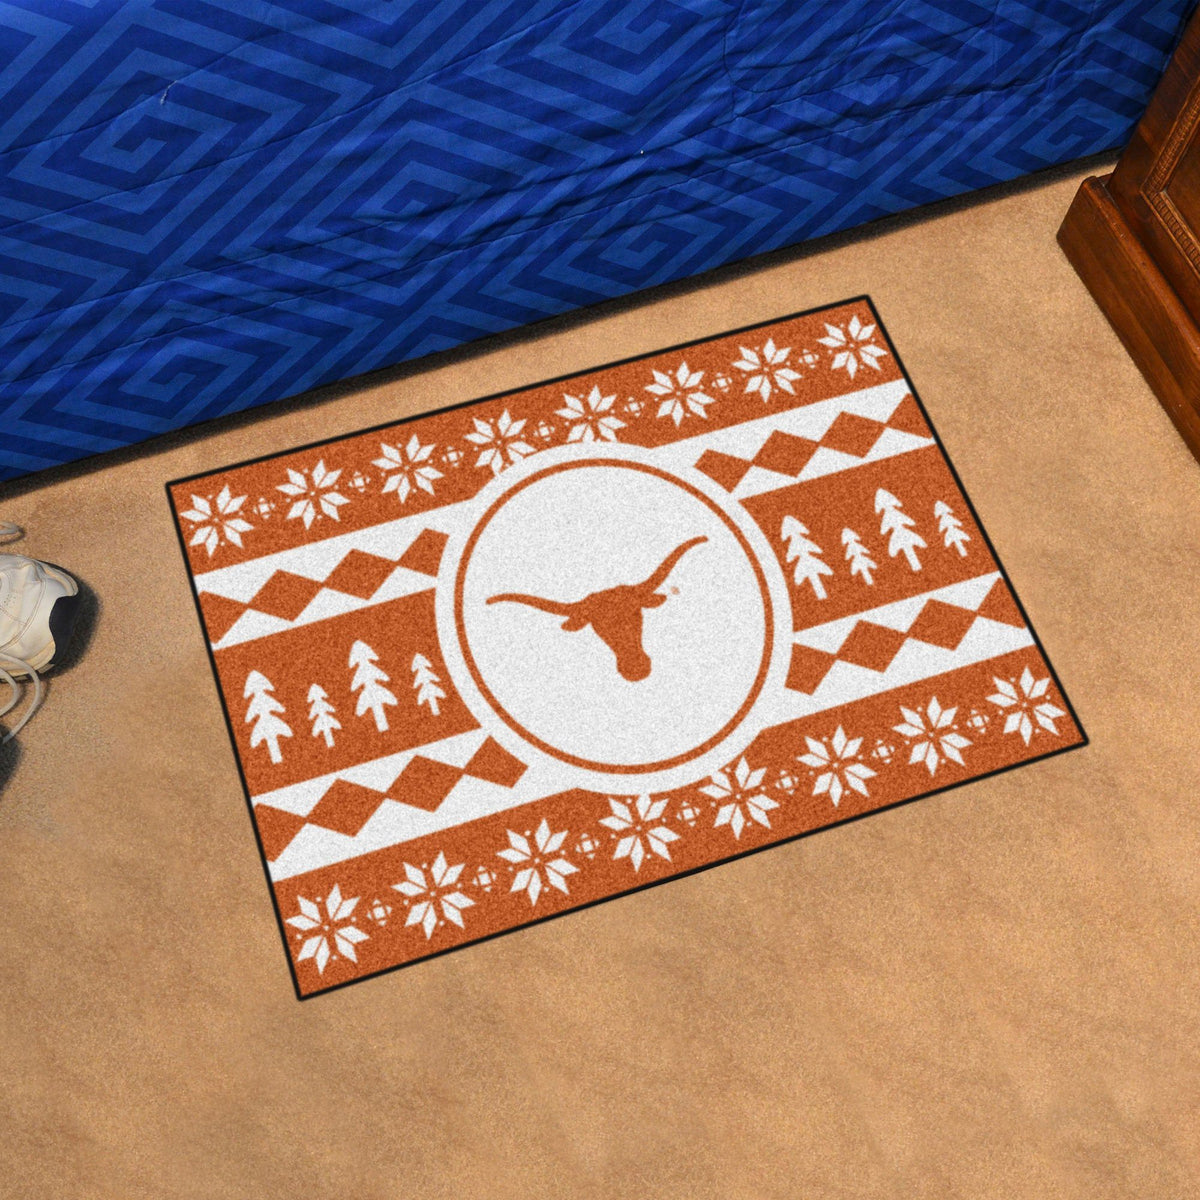 Collegiate - Holiday Sweater Starter Mat Collegiate Mats, Rectangular Mats, Holiday Sweater Starter Mat, Collegiate, Home Fan Mats Texas